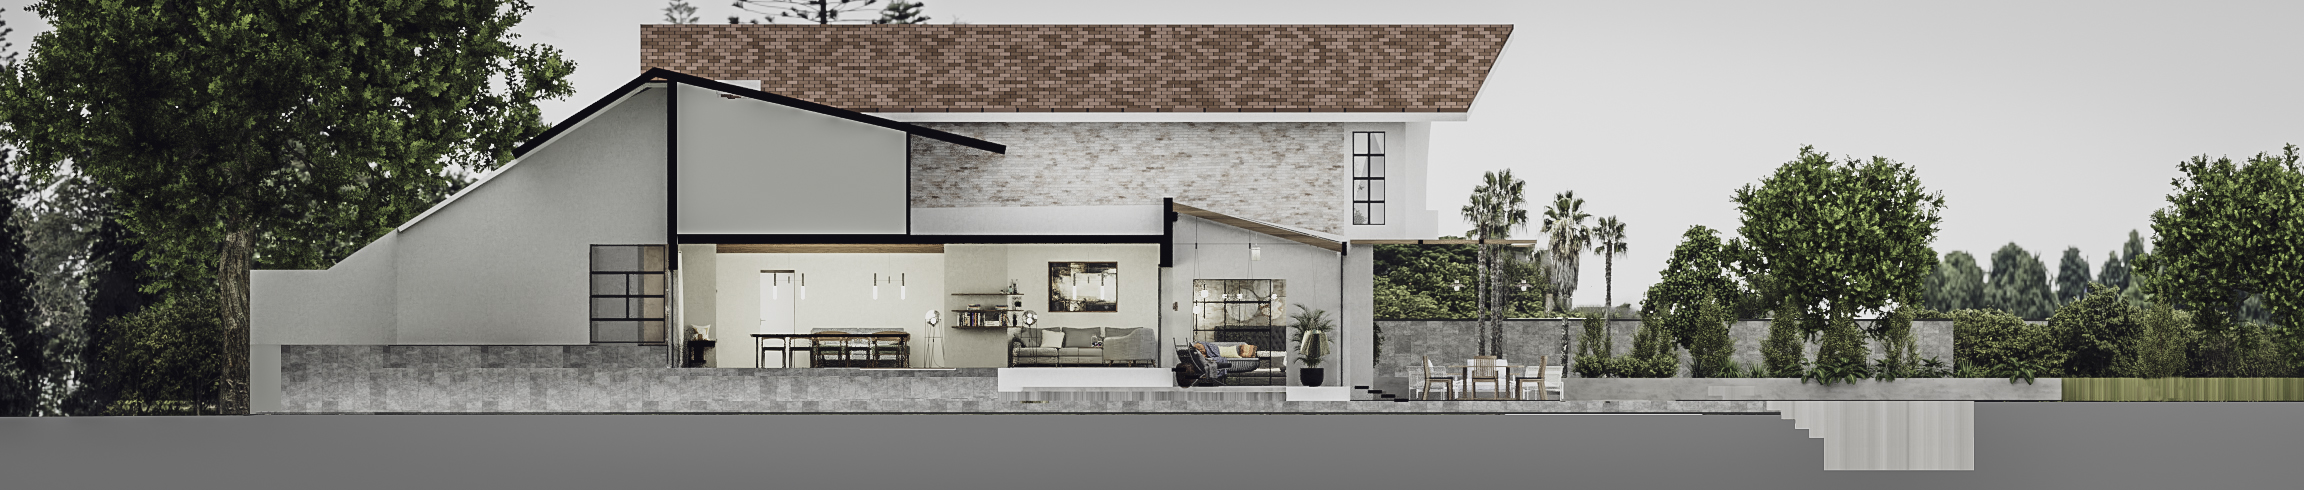 Elevation 1_Akiths residence